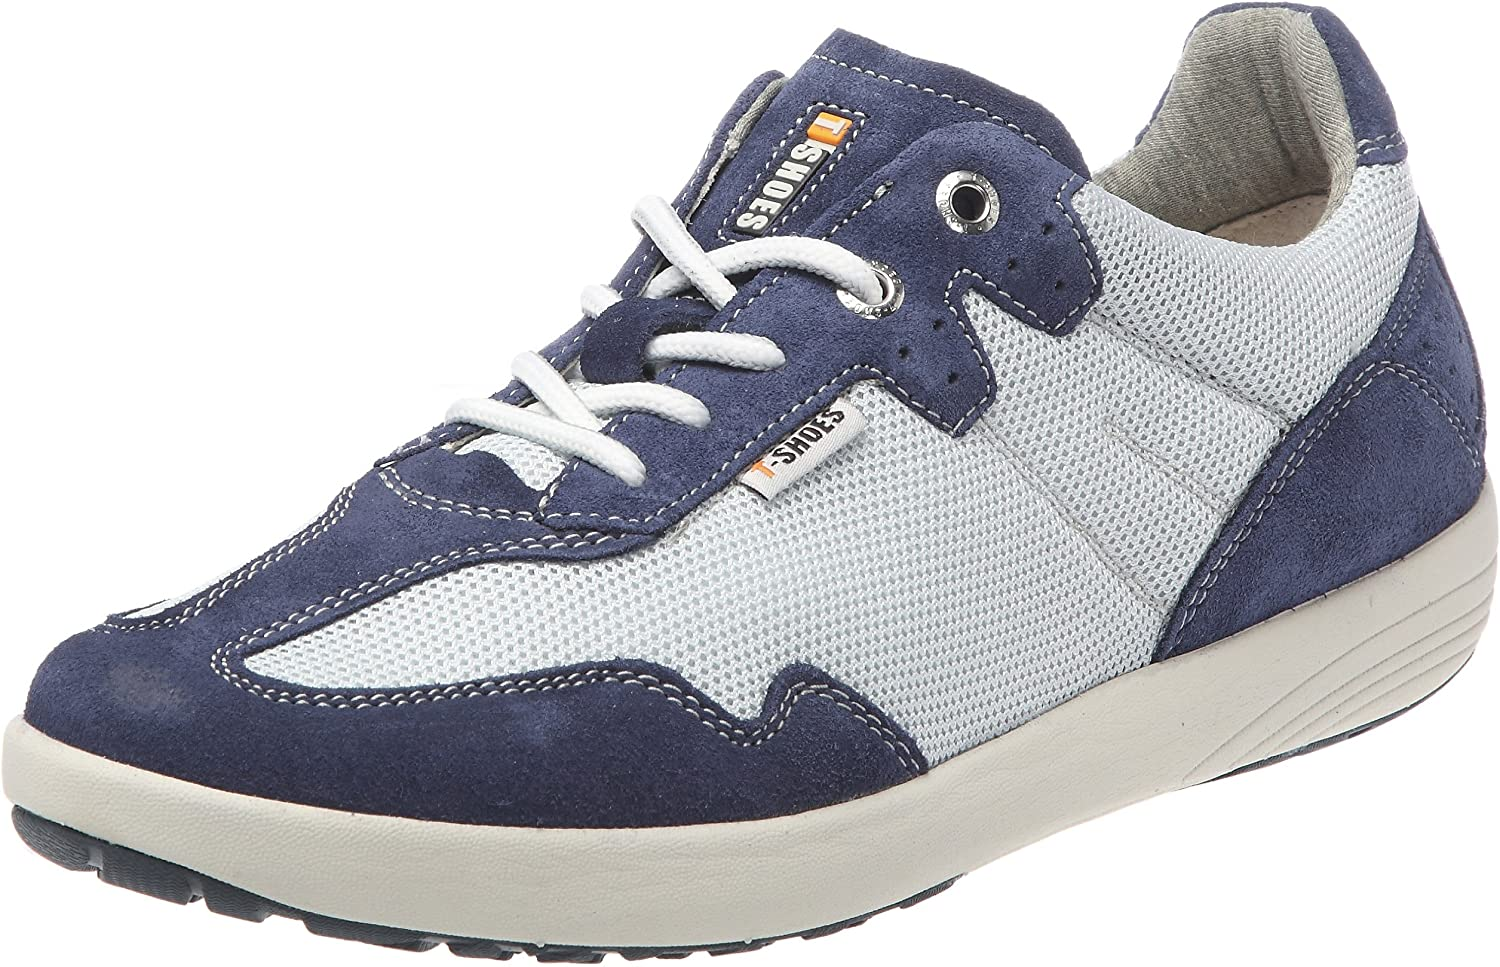 T-chaussures Baltimora, paniers mode homme